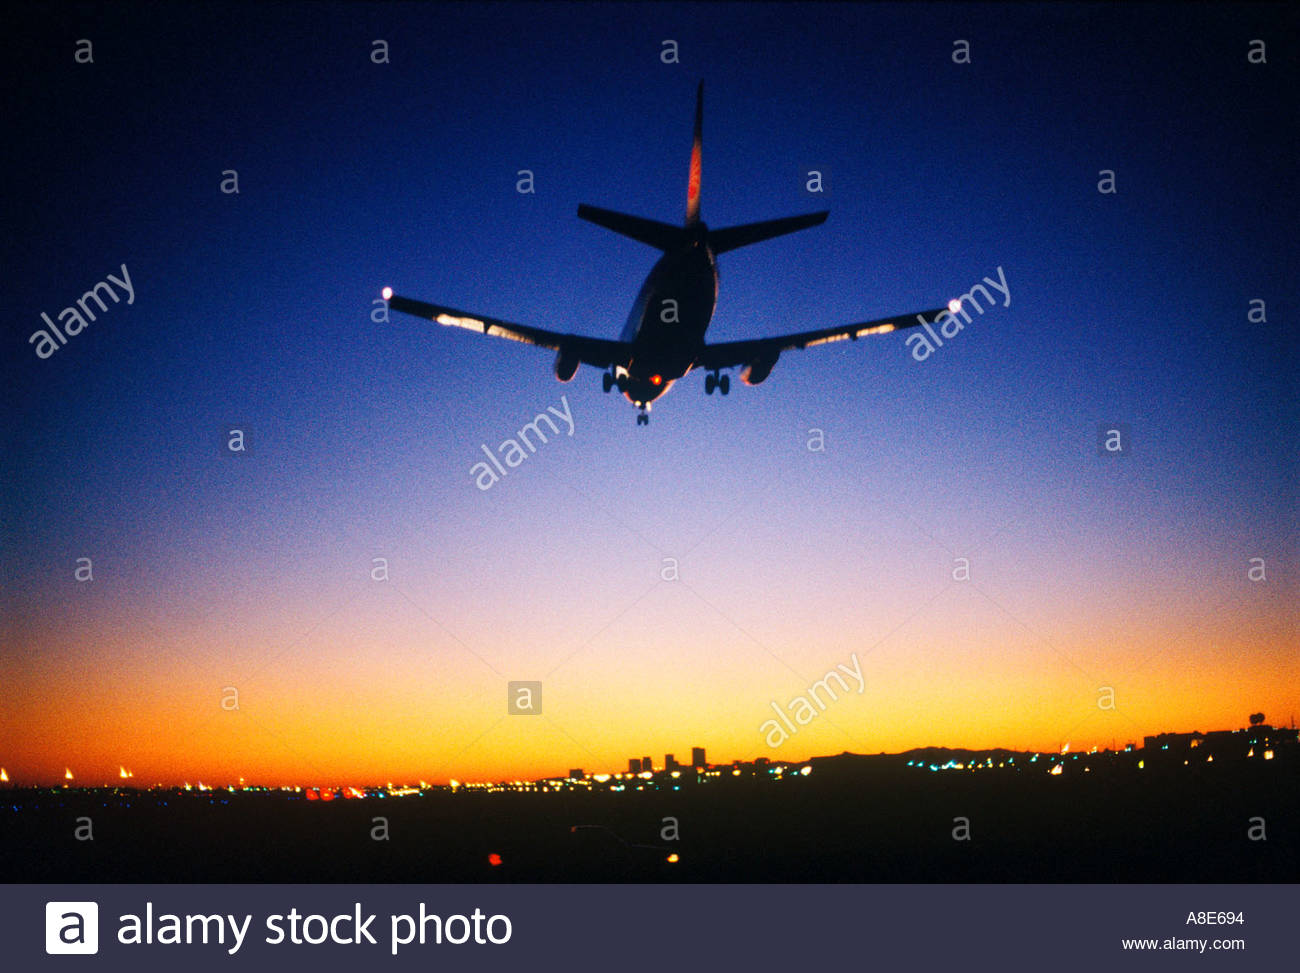 Commercial Airliner landing at Phoenix International Airport at Dusk   tall buildings of Phoenix can be seen in the background - Stock Image